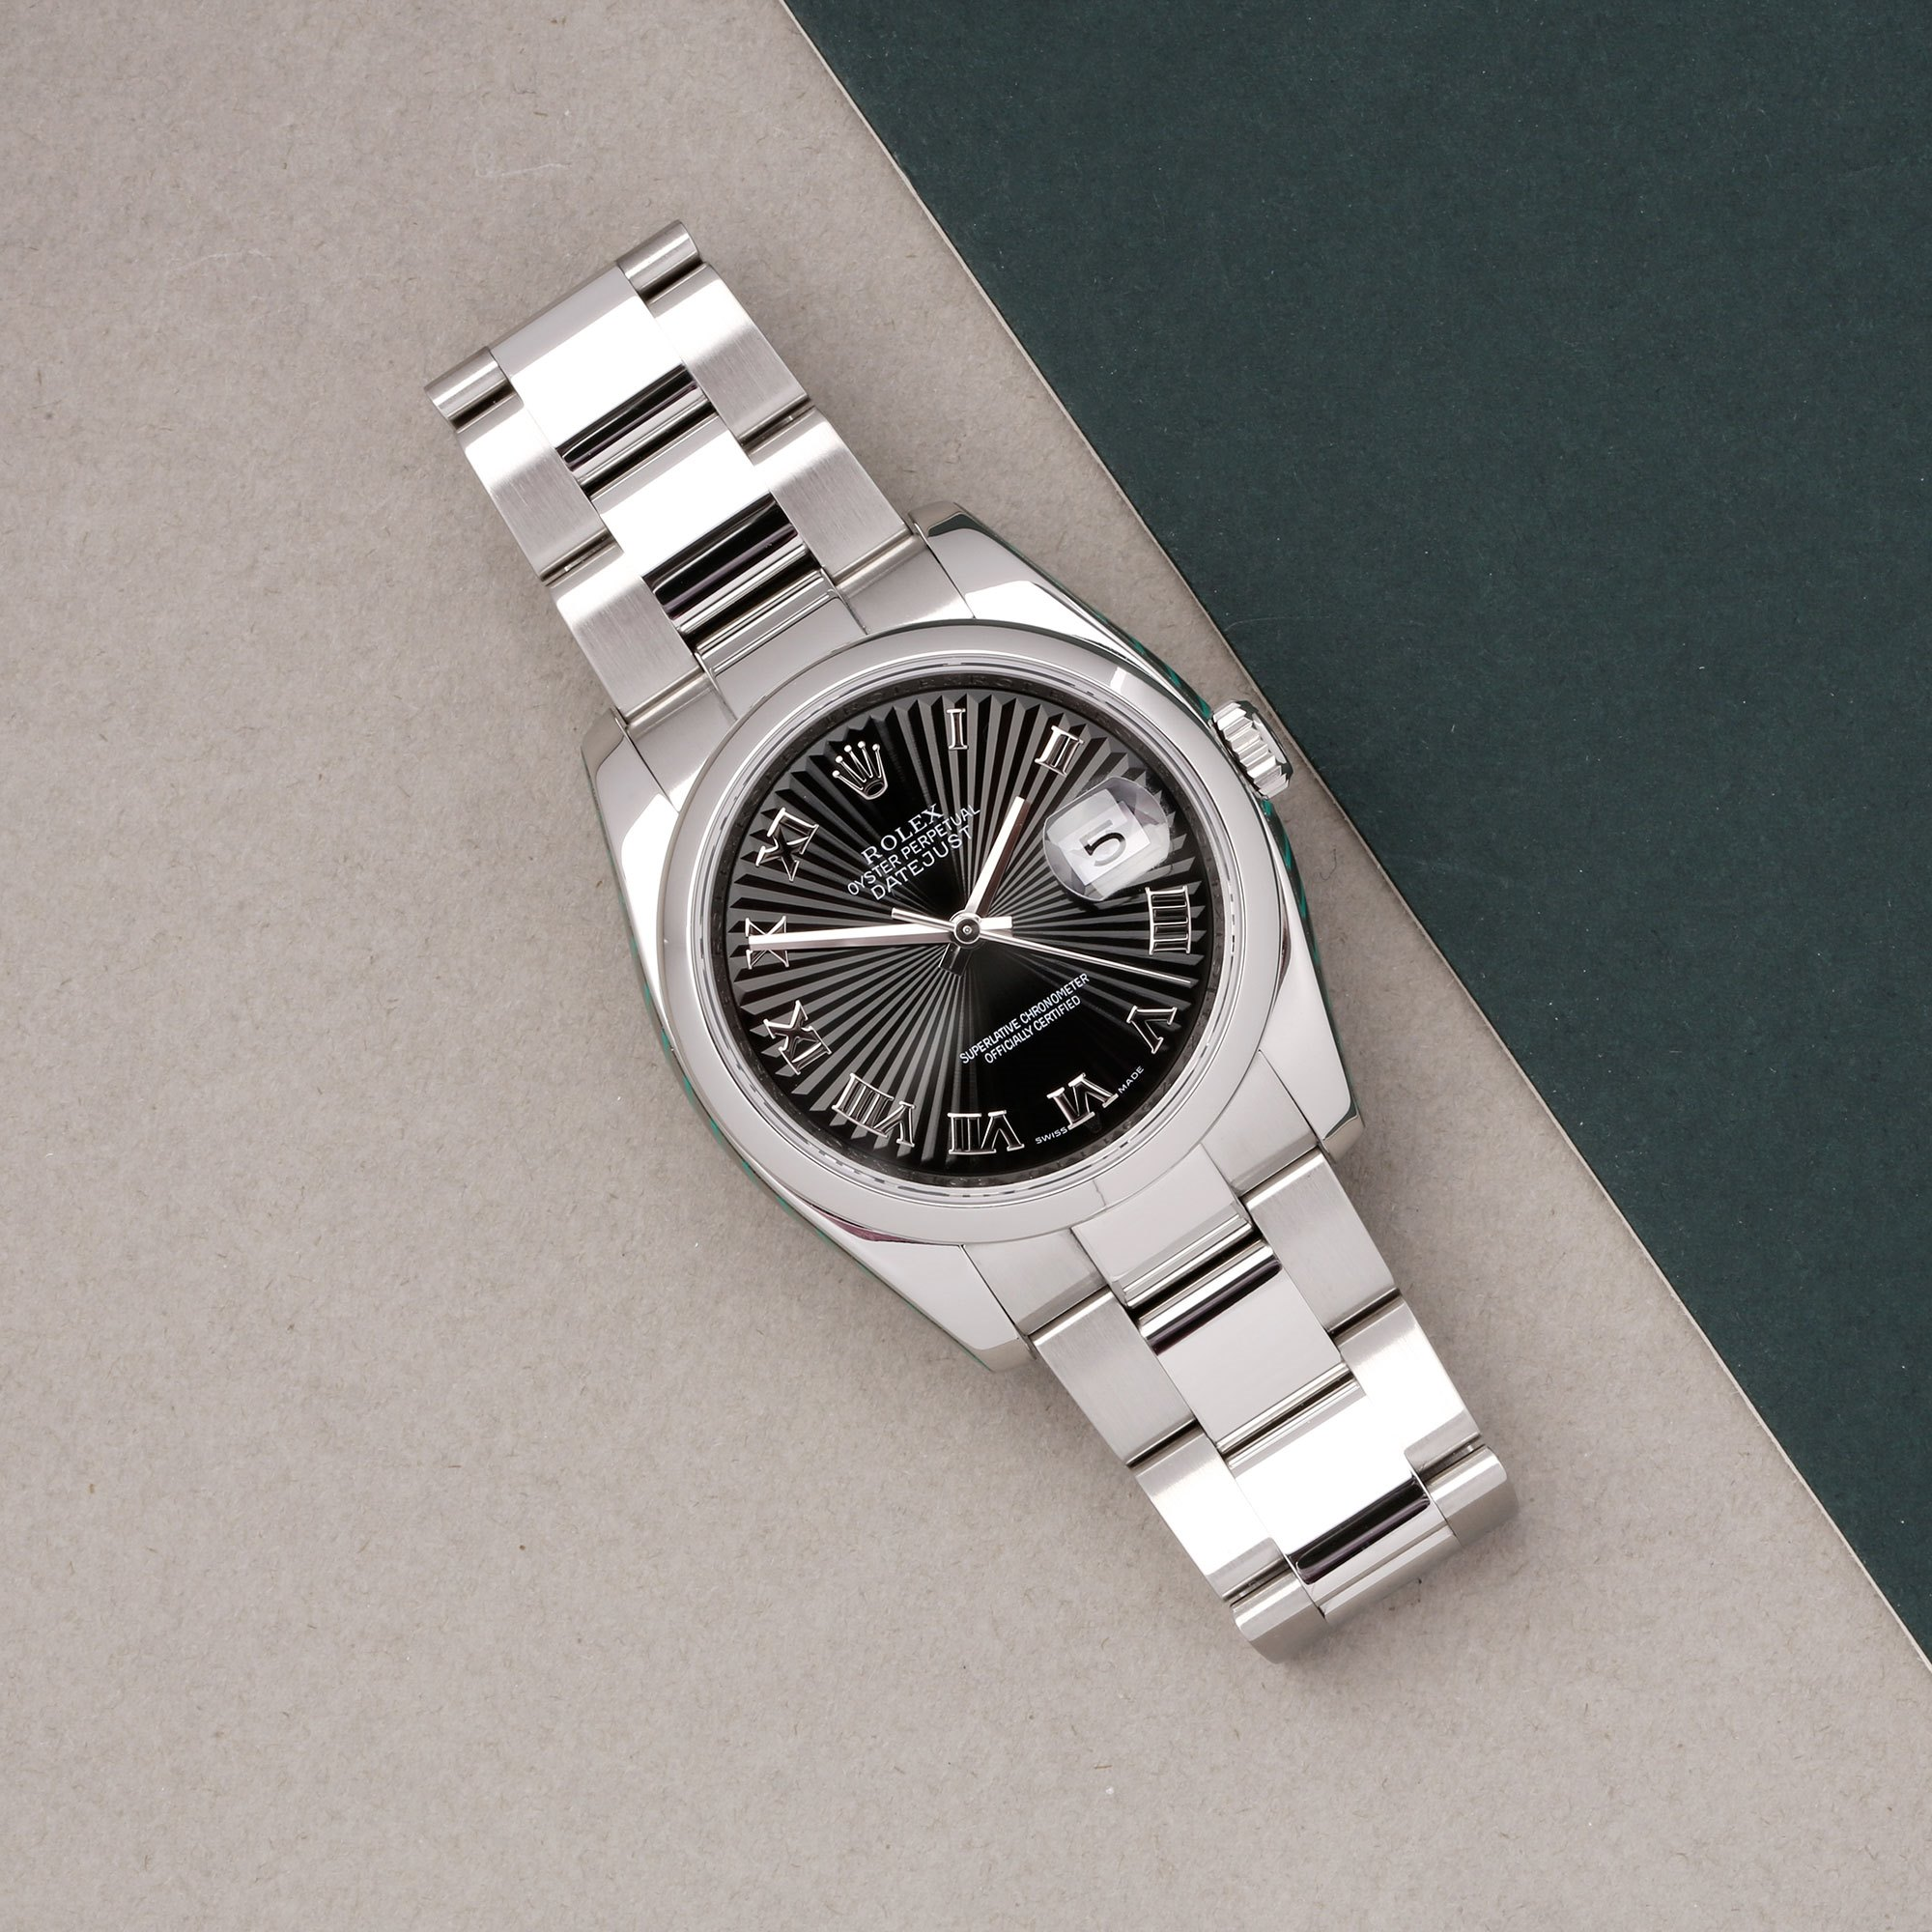 Rolex Datejust 36 116200 Men's Stainless Steel Watch - Image 12 of 12